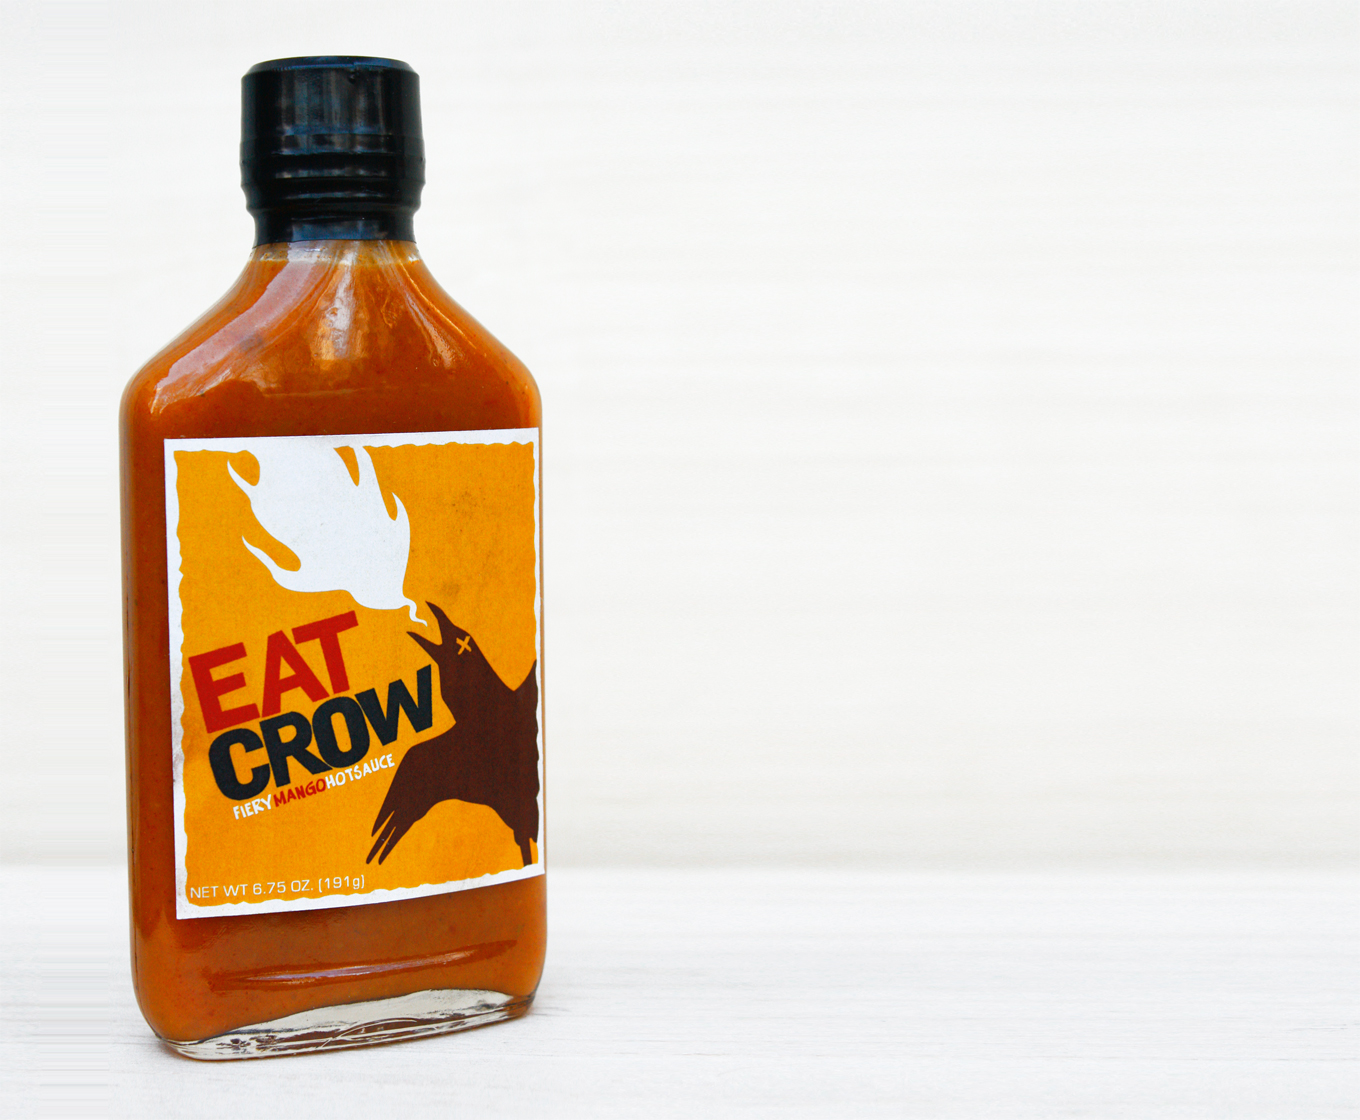 eat-crow-hot-sauce-bottle